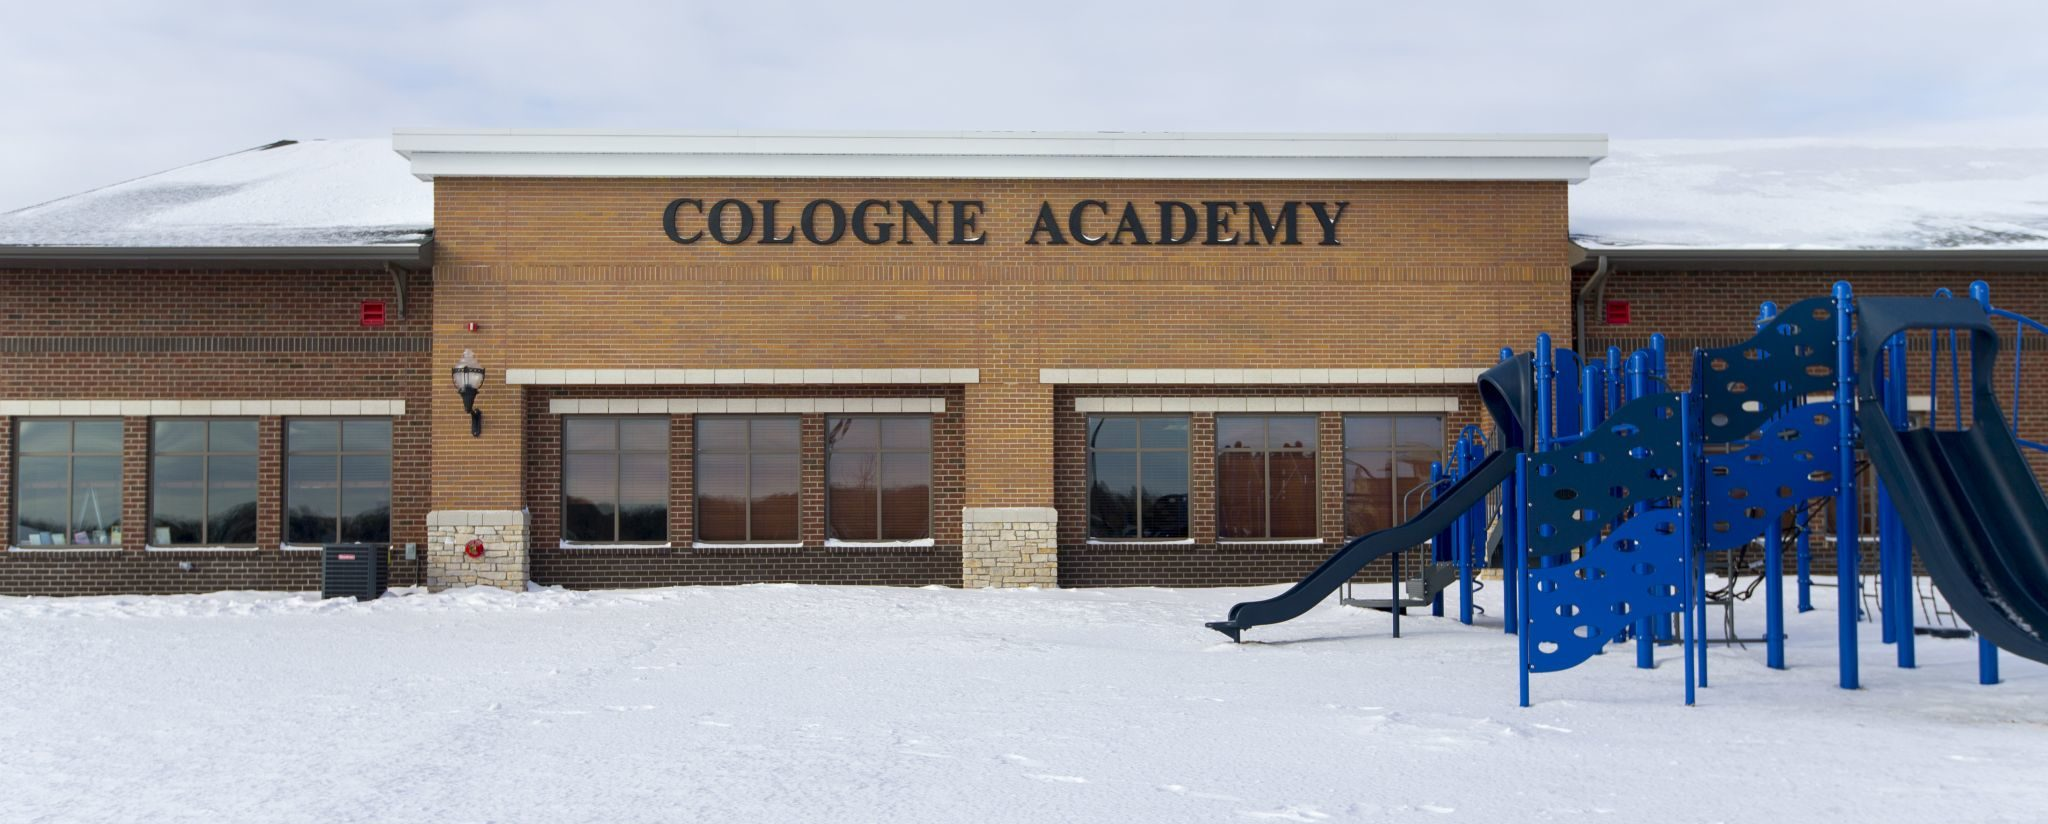 The Cologne Academy is a charter school in Cologne, Minnesota, with 460 students from kindergarten to eighth grade. Photos courtesy Scranton Products